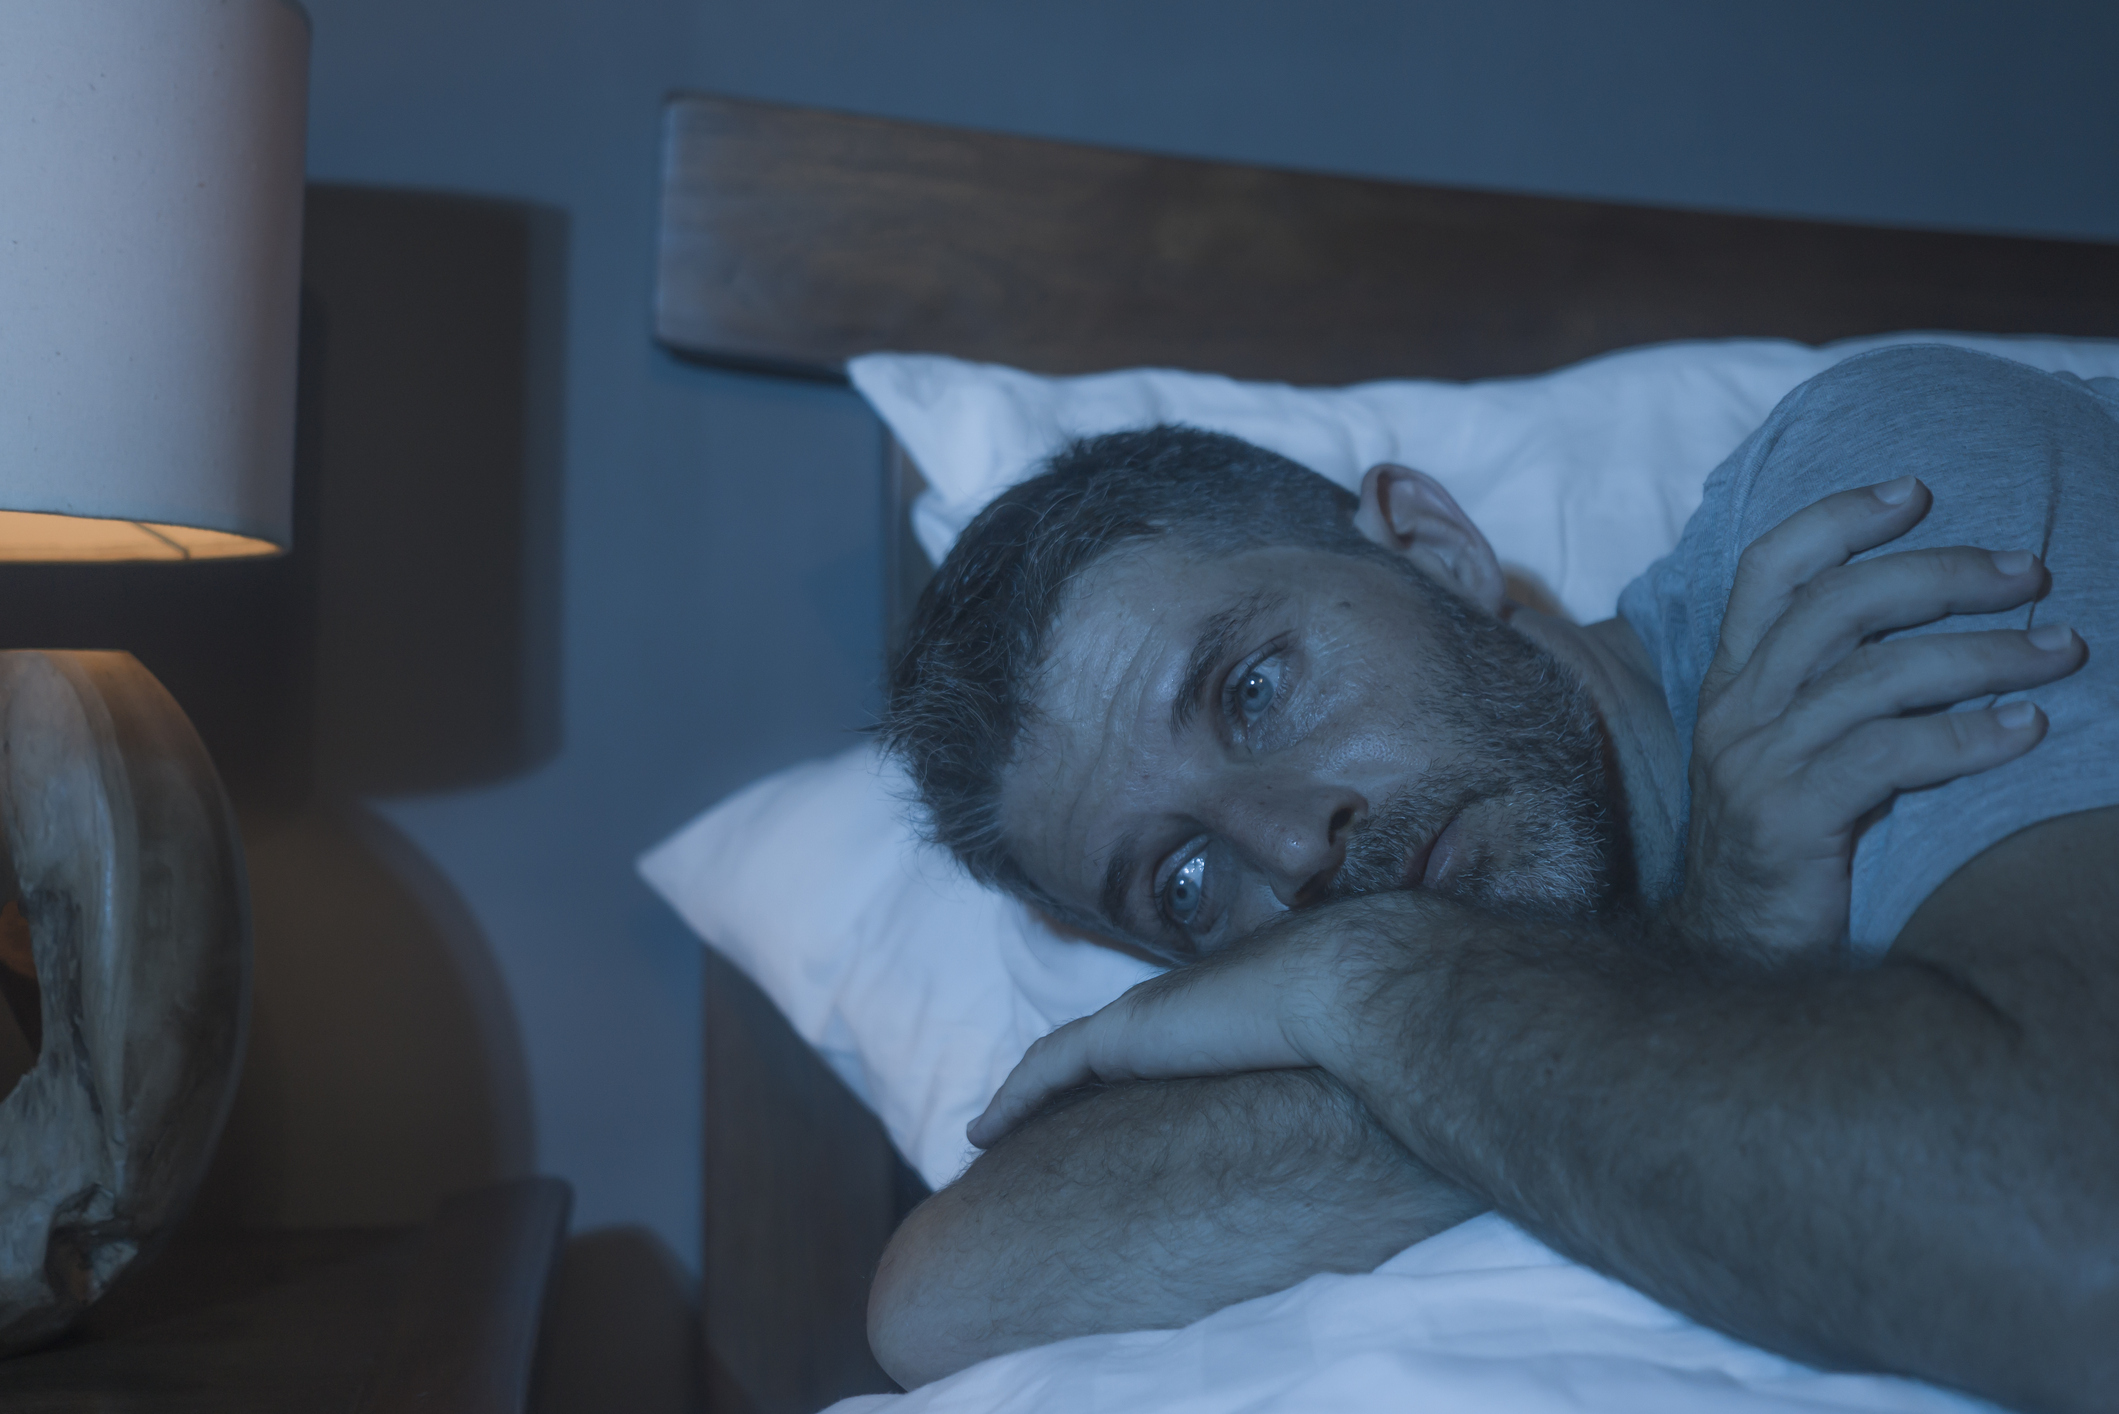 Why you should take sleep as seriously as nutrition and exercise